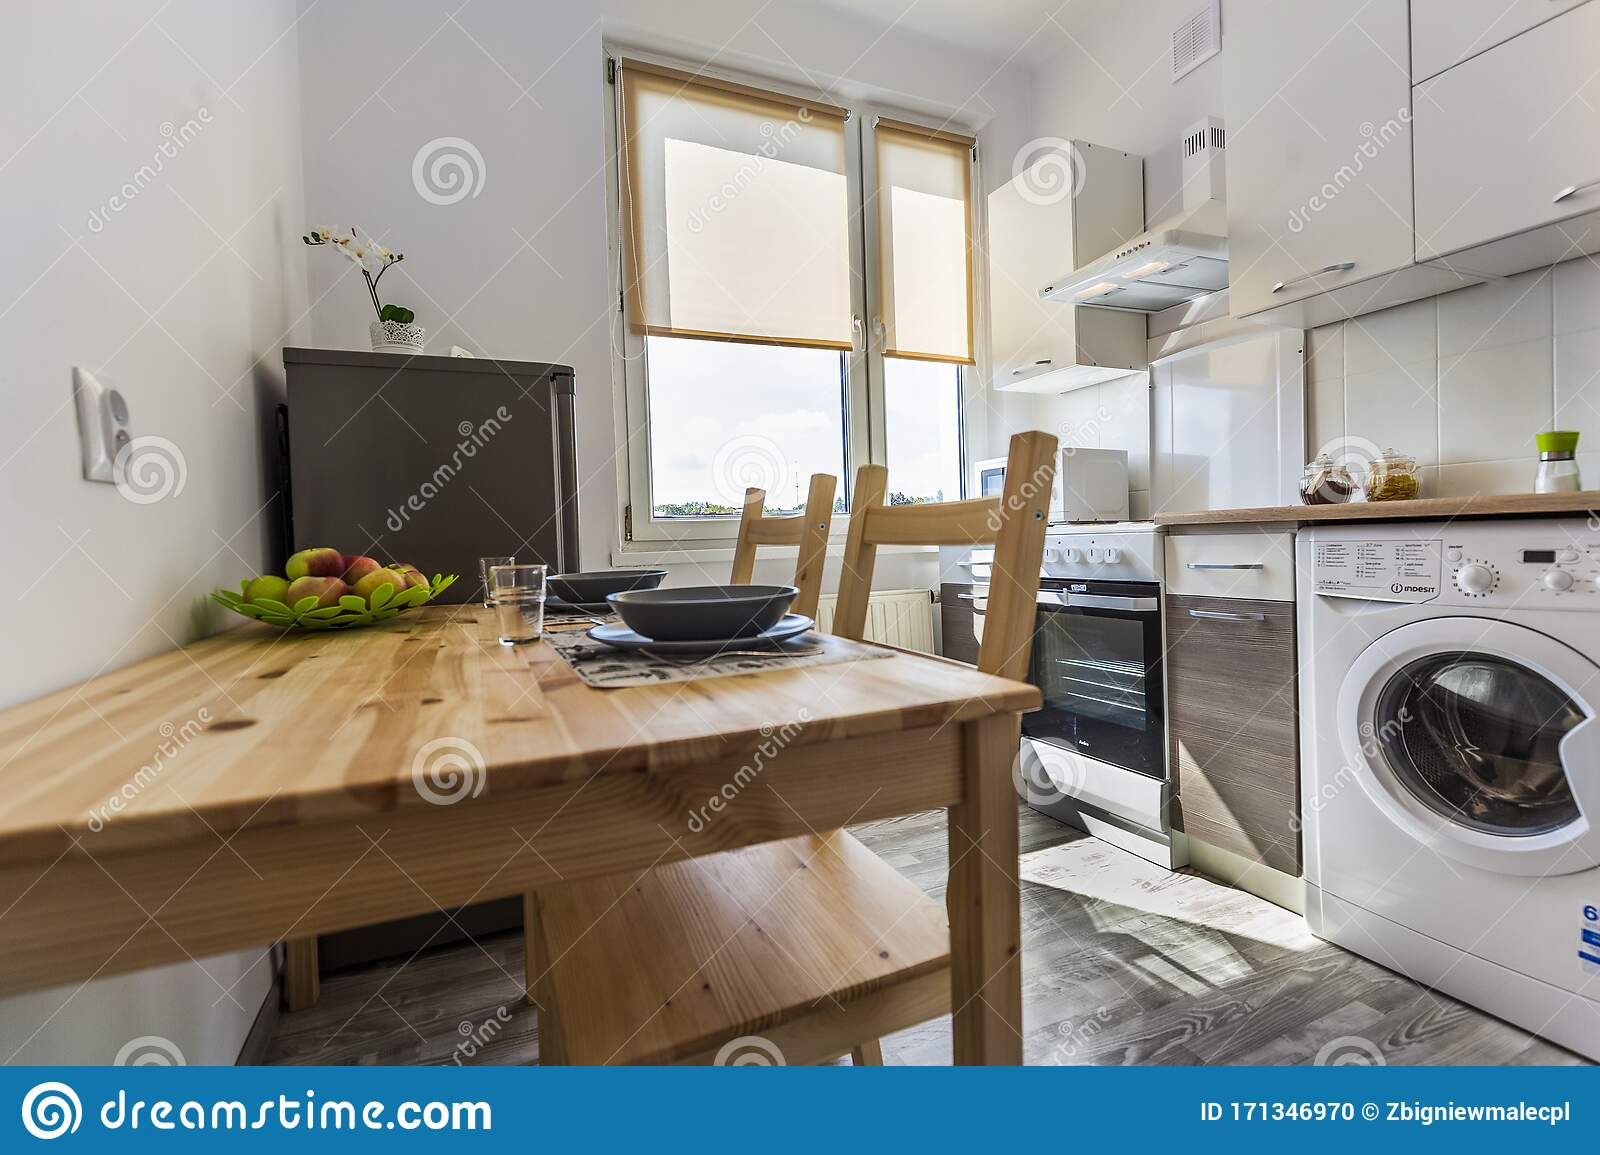 Real And Special Small Kitchen Equipped With A Table Chairs Fridge And Washing Machine Editorial Image Image Of Dining Friendly 171346970